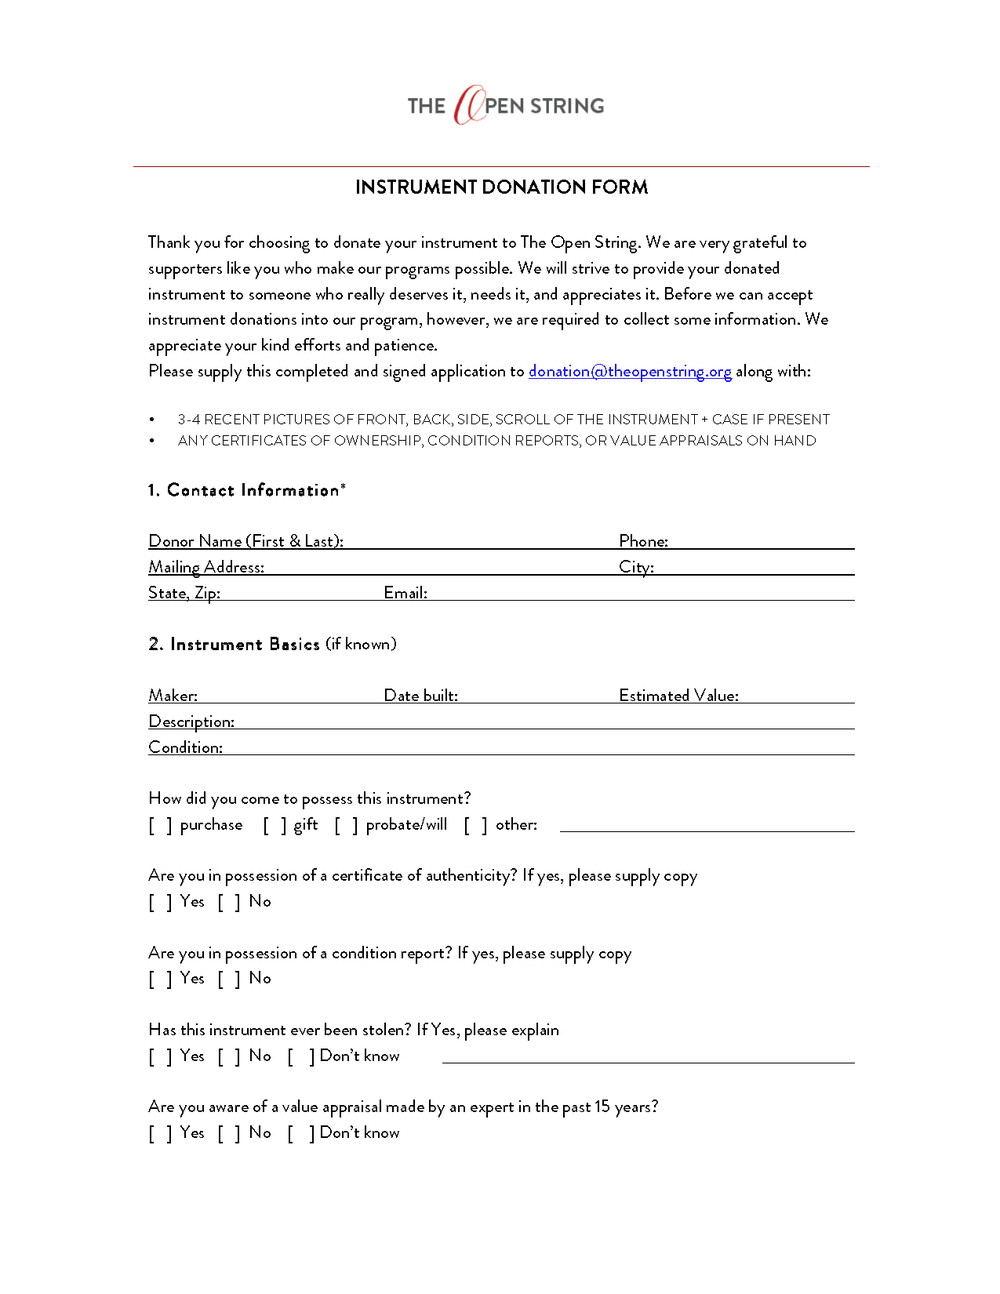 CLICK AND DOWNLOAD, PRINT AND FILL OUT